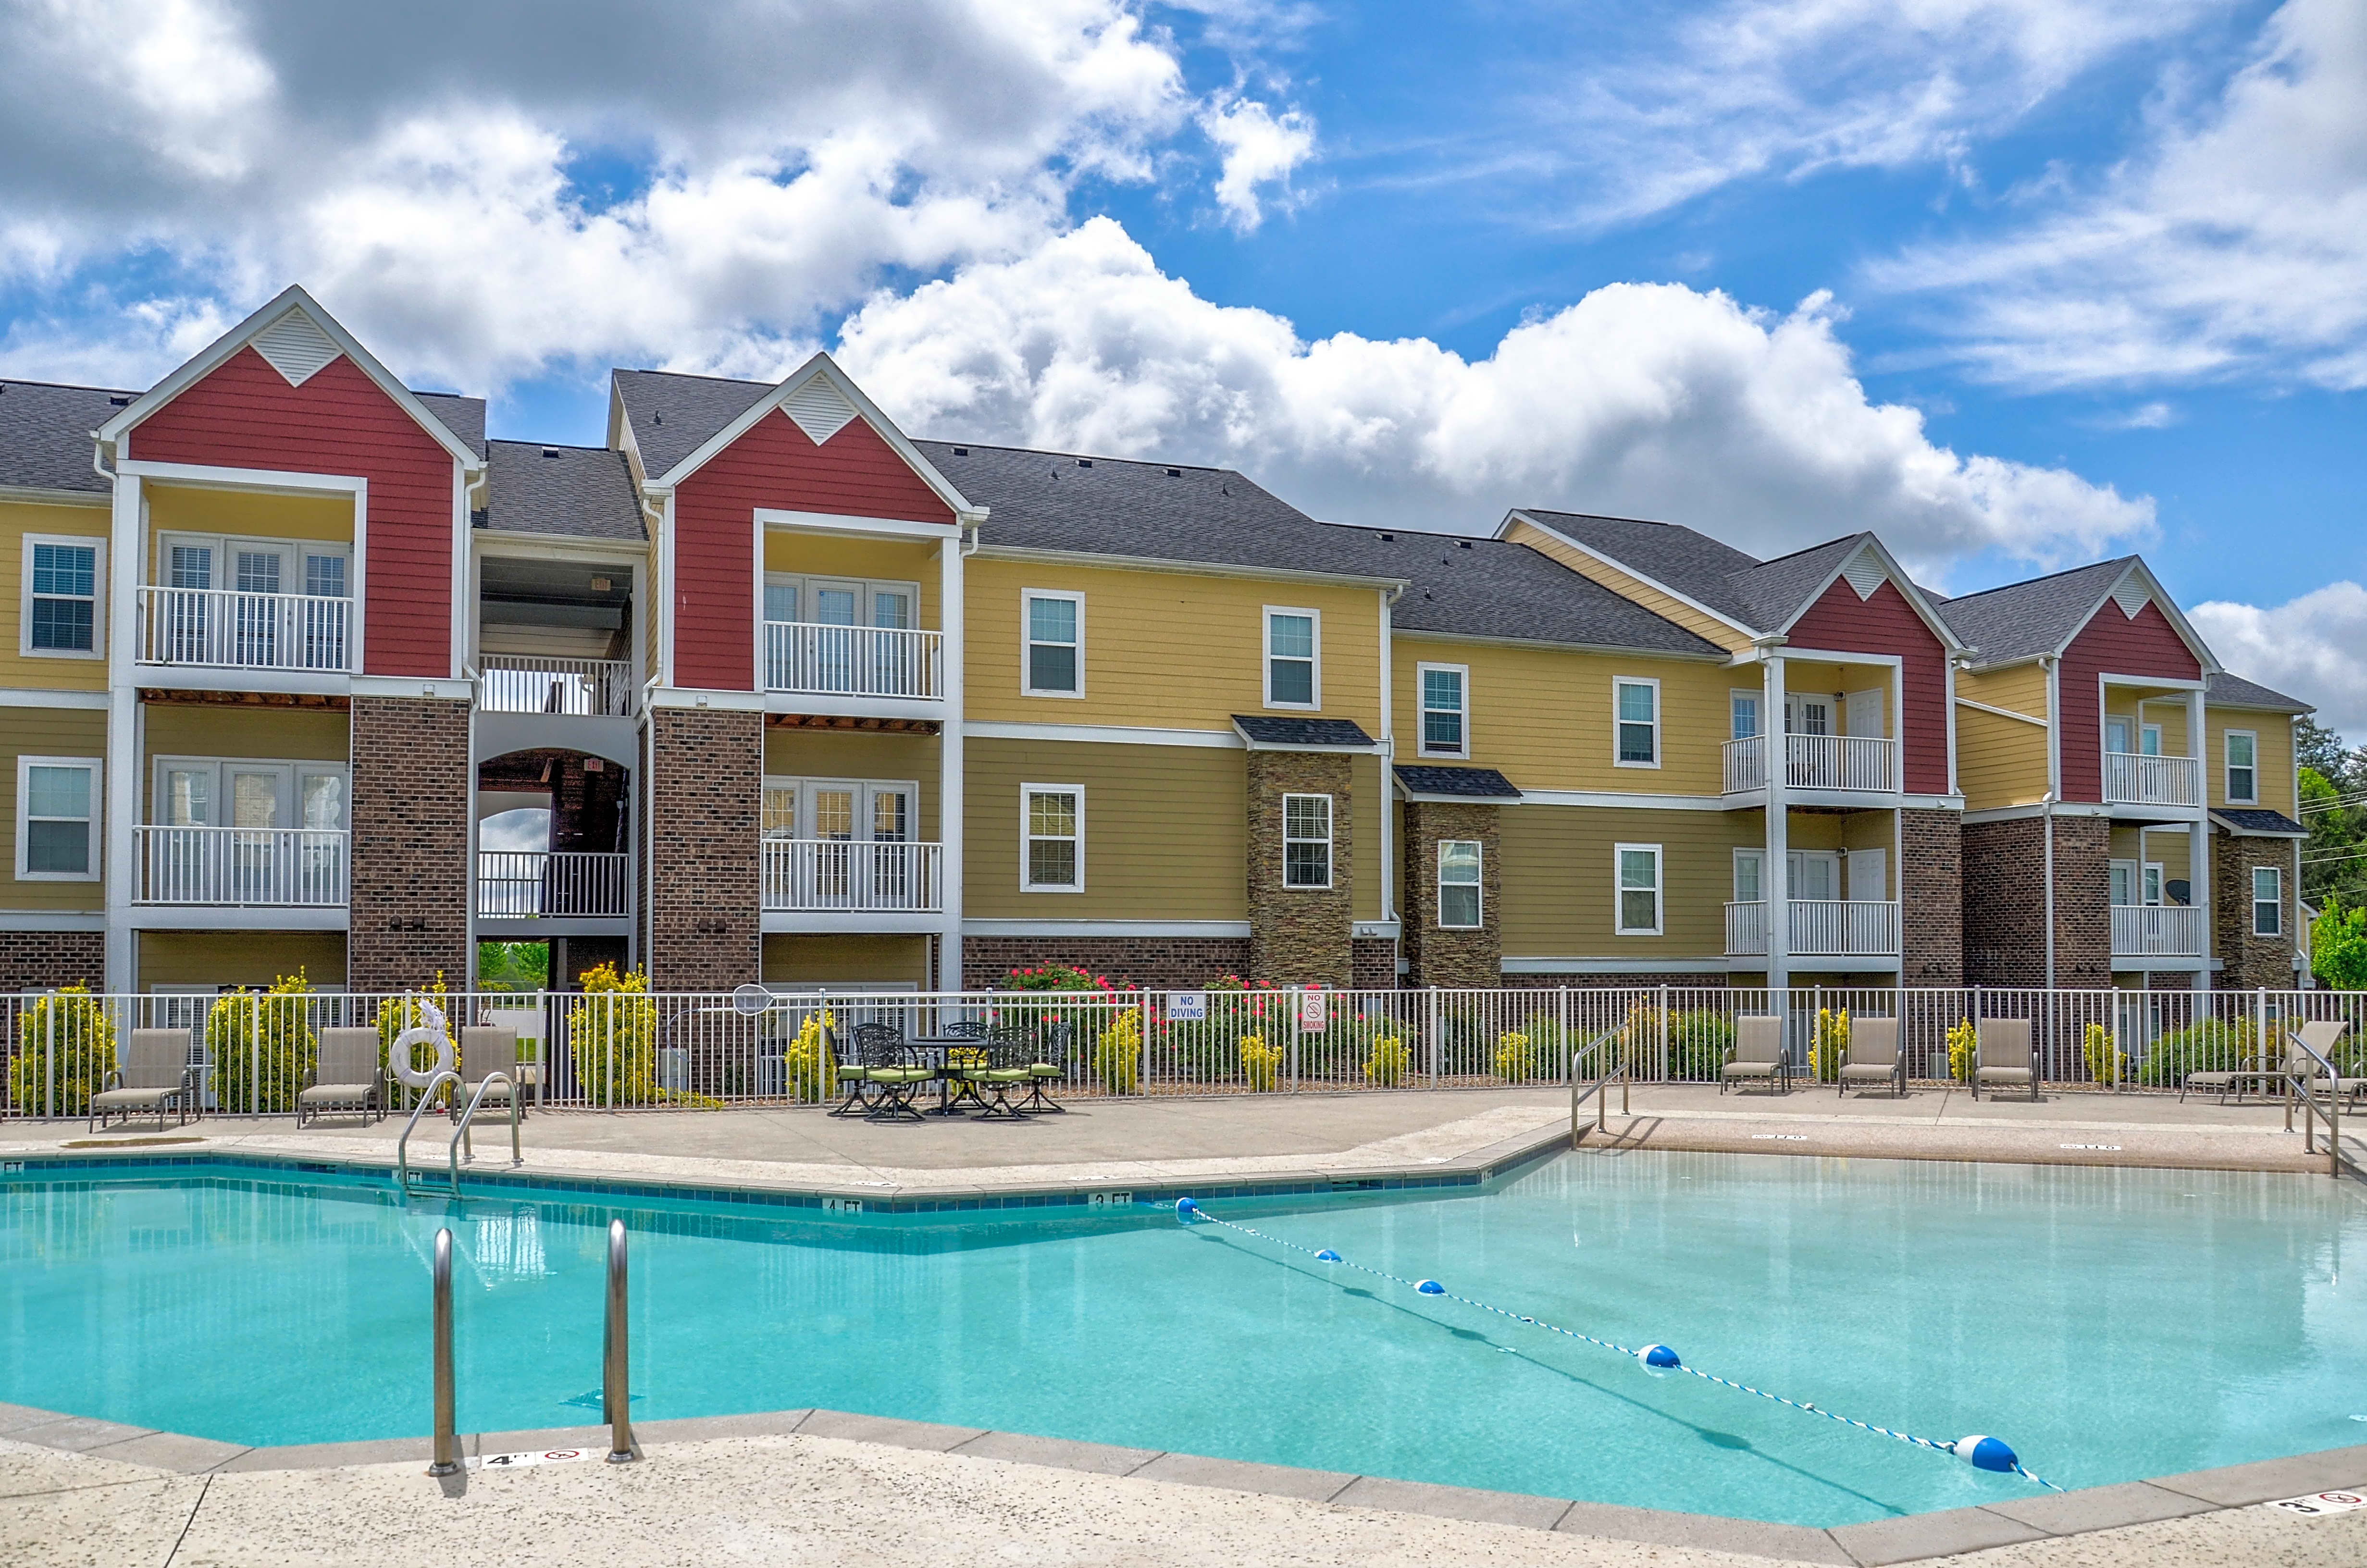 Apartments Near Belmont Abbey The Village of Ballantyne Apartment Homes for Belmont Abbey College Students in Belmont, NC